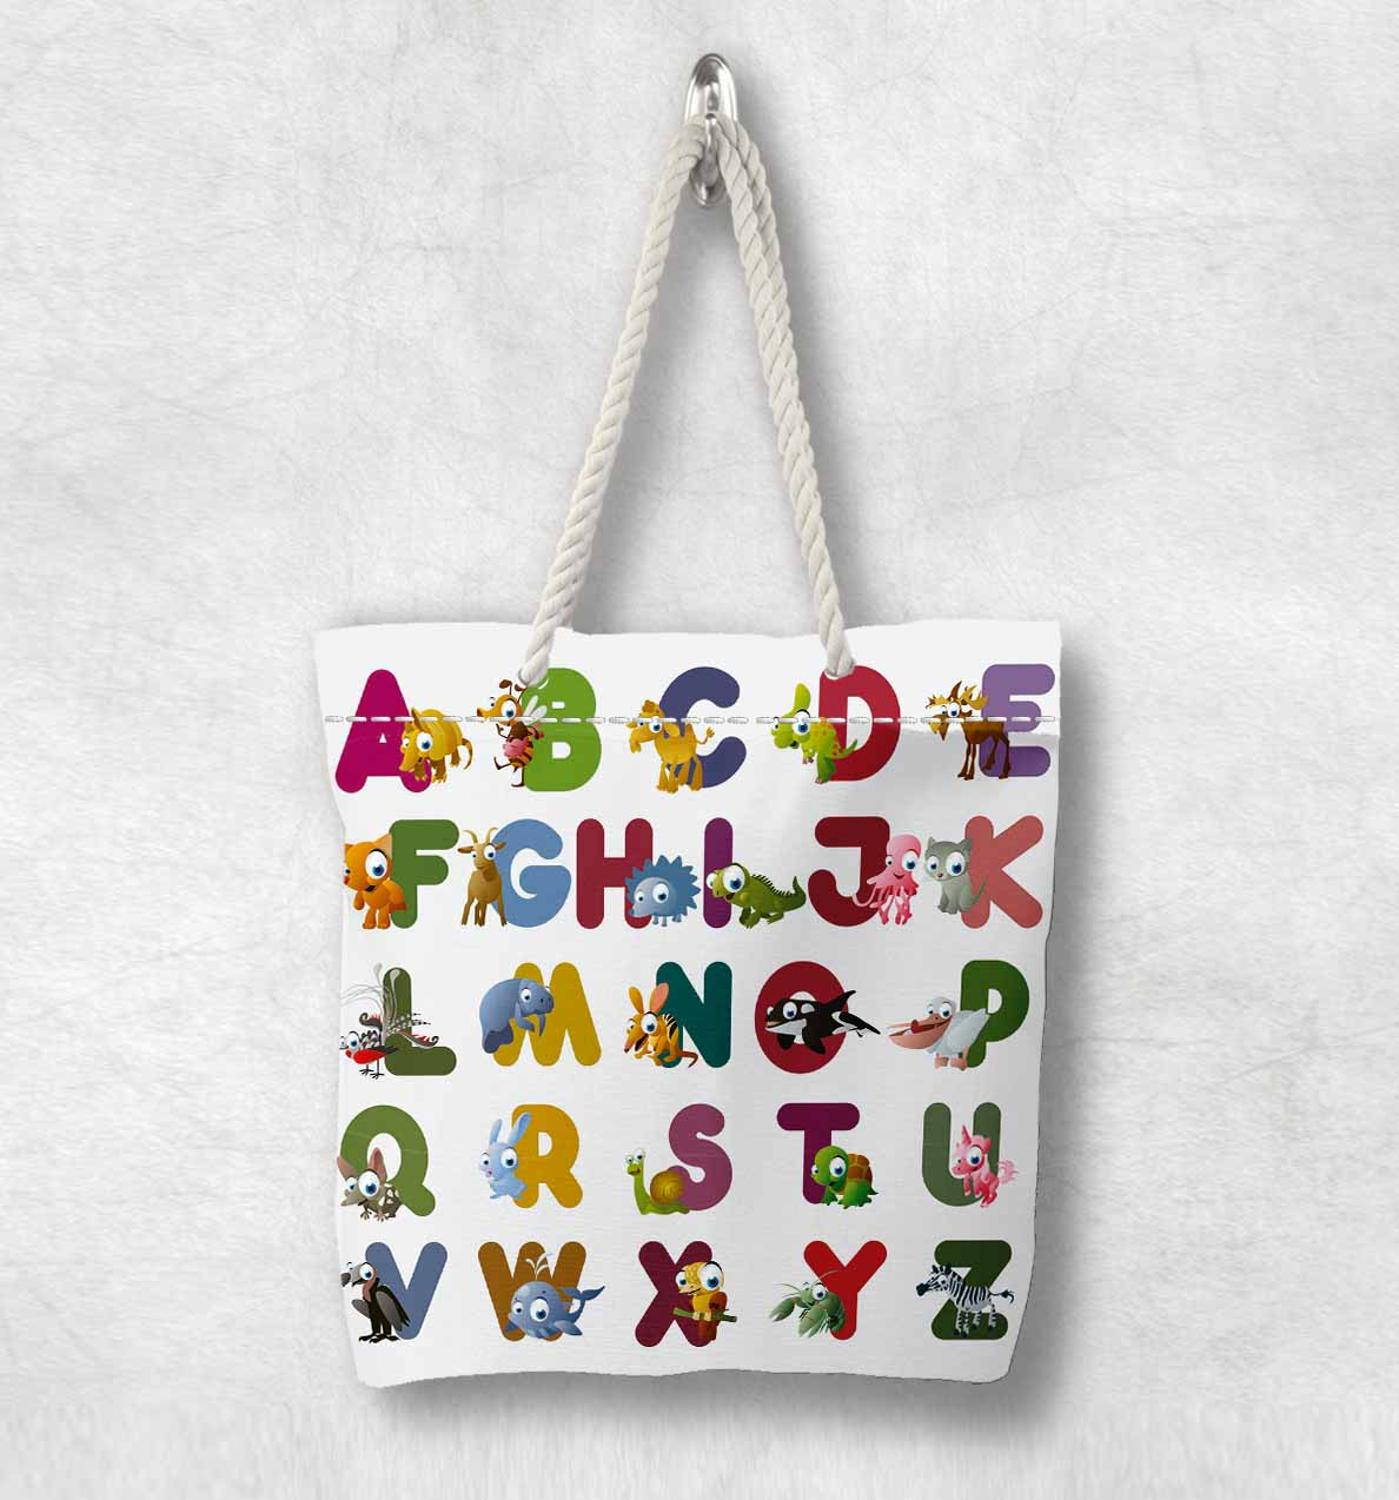 Else Cute Funny Alphabet Letters Animals New Fashion White Rope Handle Canvas Bag  Cartoon Print Zippered Tote Bag Shoulder Bag